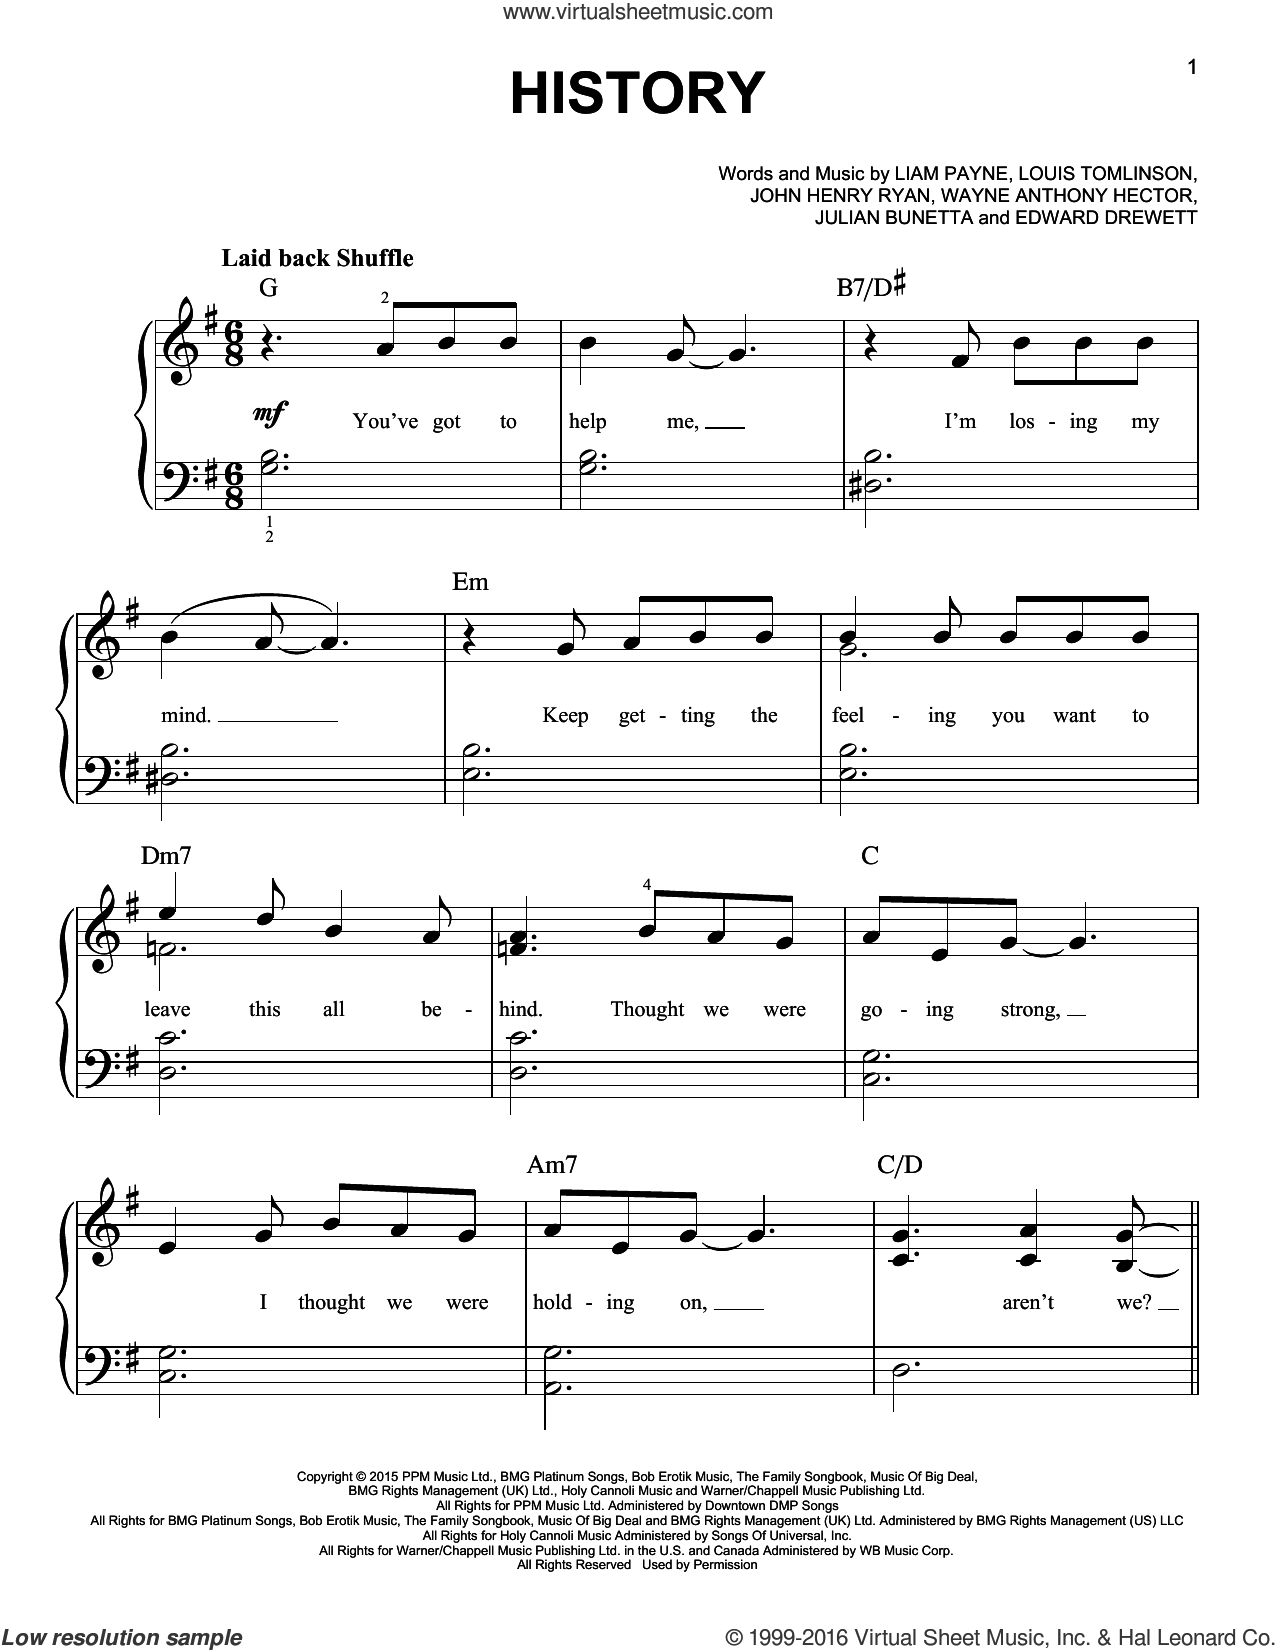 History sheet music for piano solo by Wayne Hector